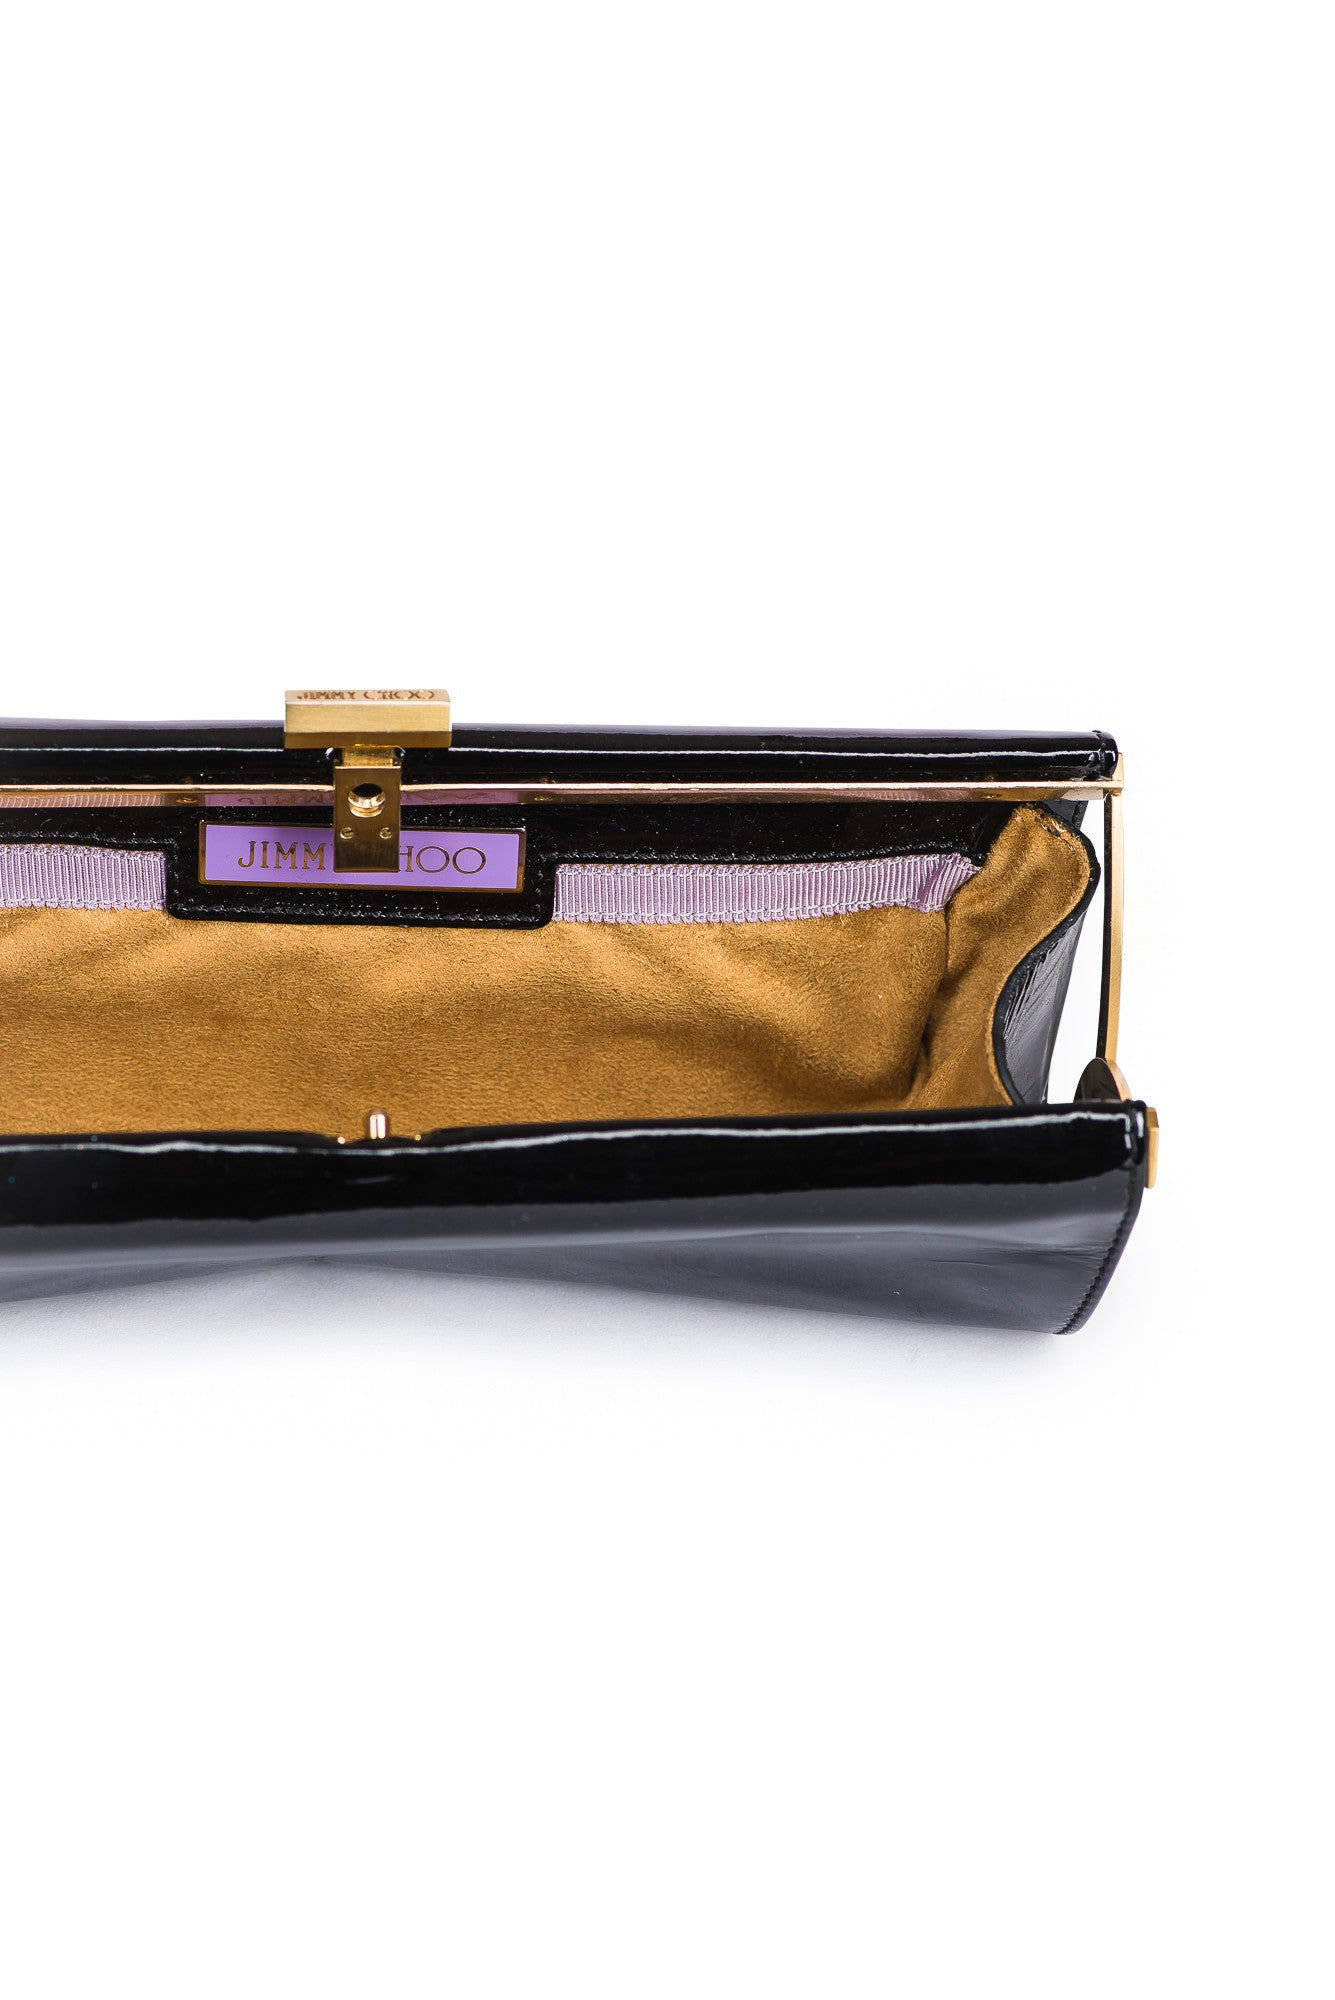 JIMMY CHOO Patent Leather Hinge Clutch